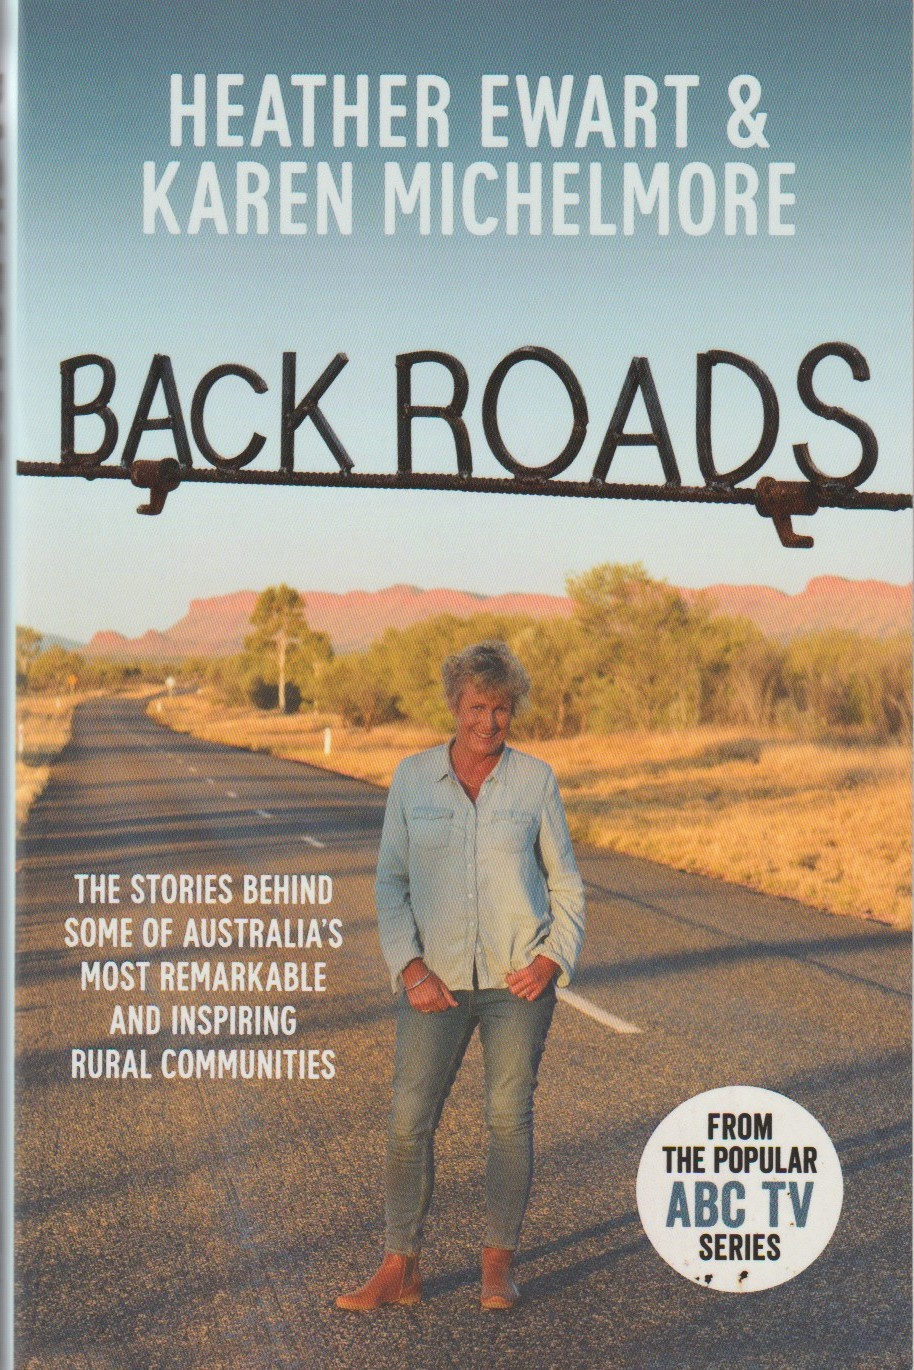 Back Roads - the stories behind some of Australia's most remarkable and inspiring rural communities